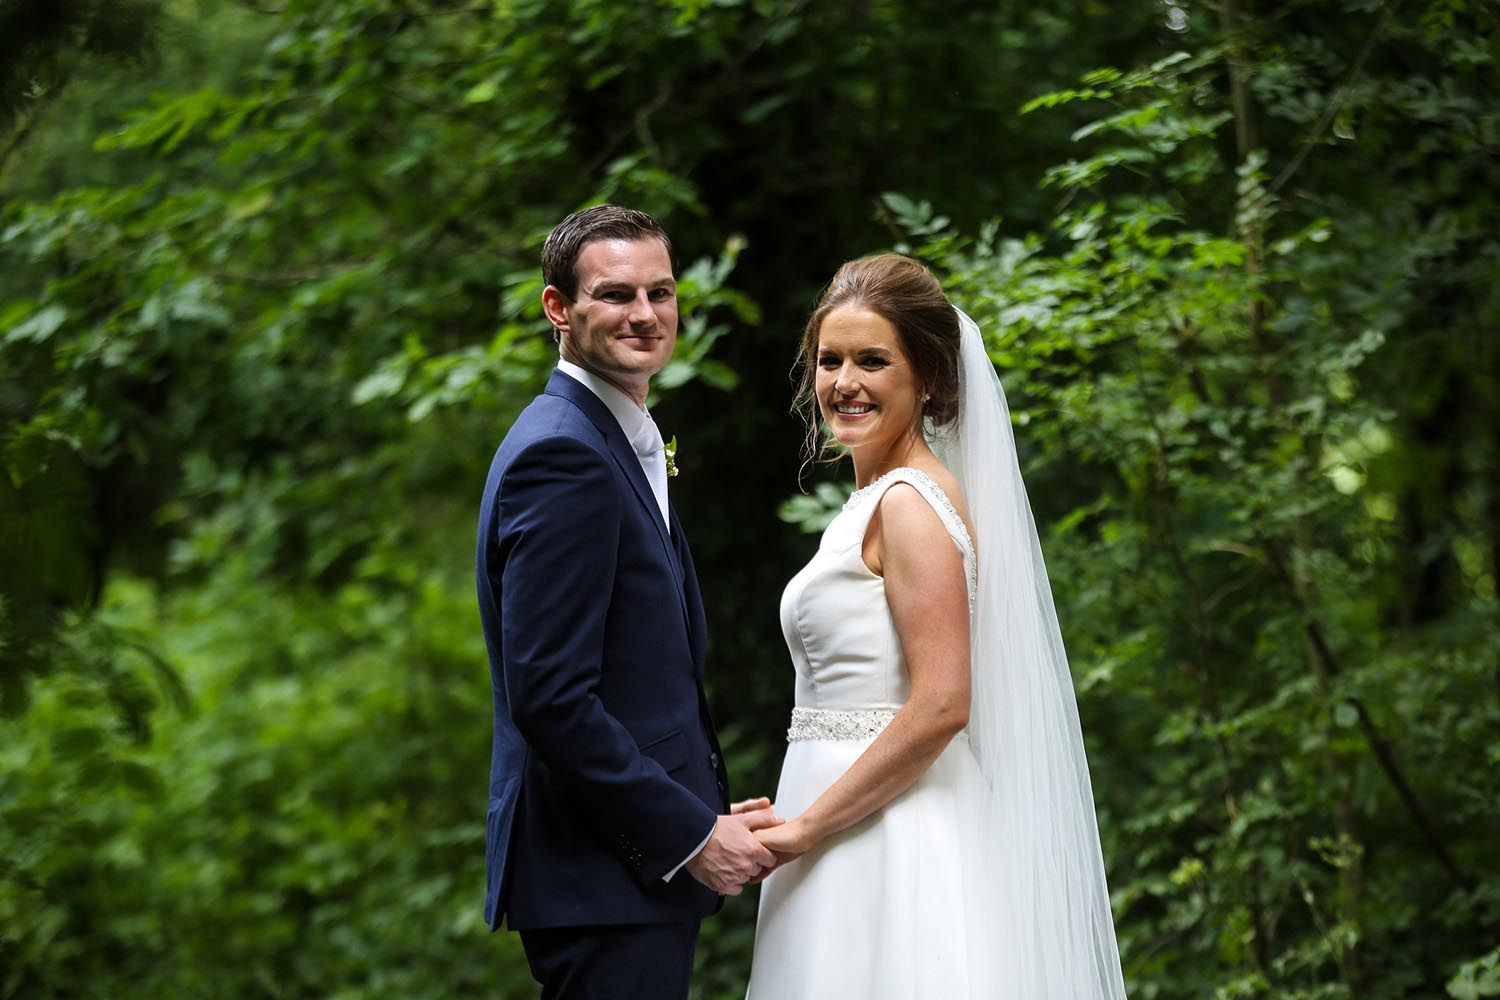 Portrait of married couple taken in the forest